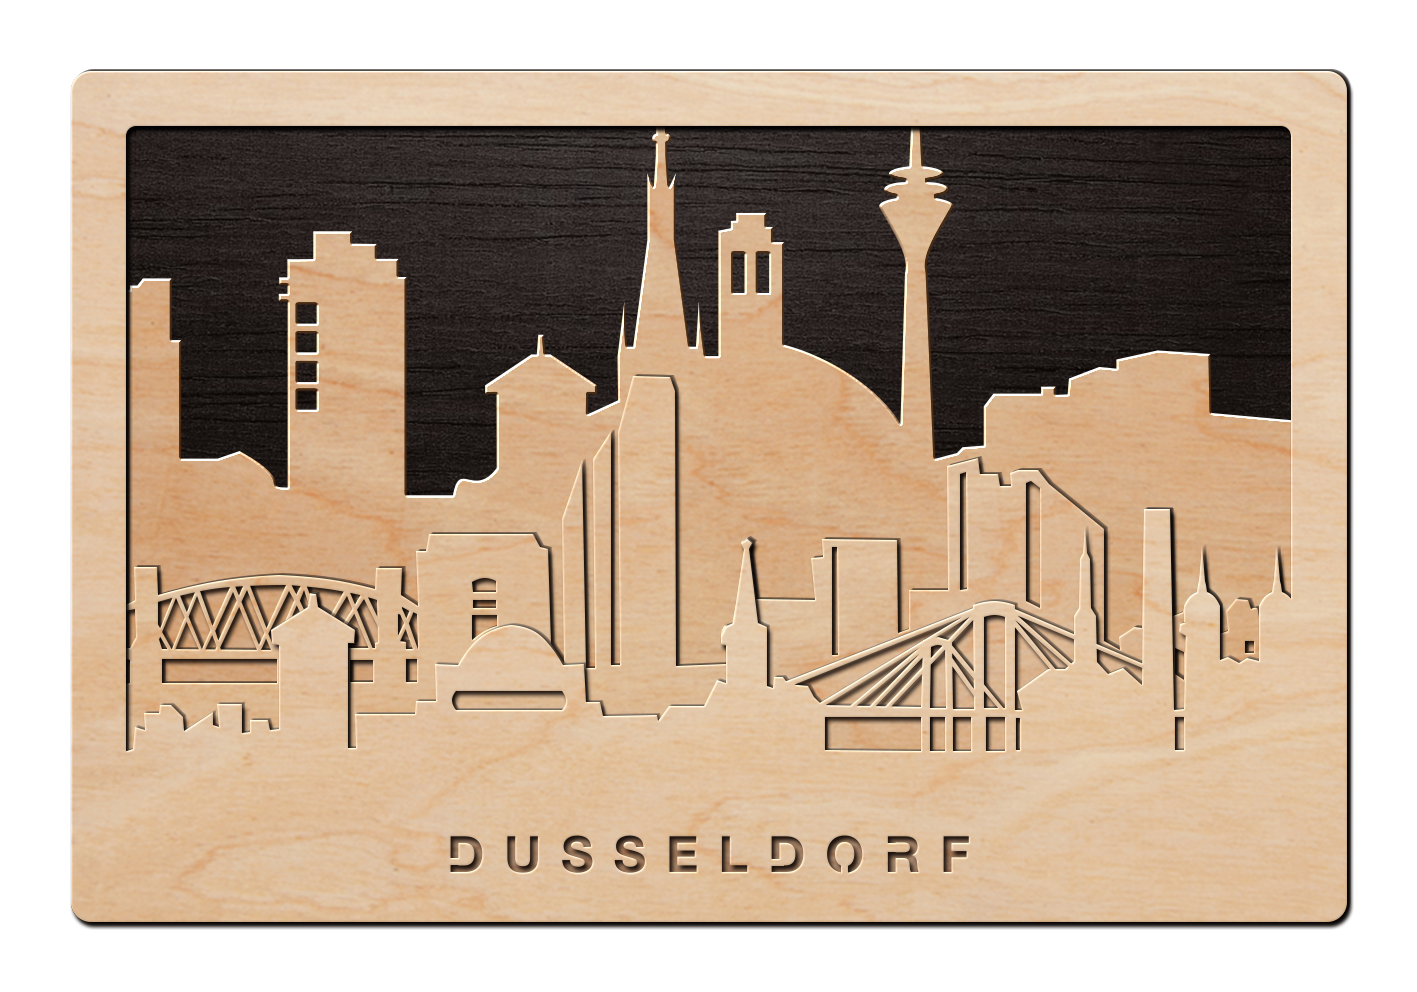 3d wandbild aus holz skyline d sseldorf einfach pers nlich. Black Bedroom Furniture Sets. Home Design Ideas